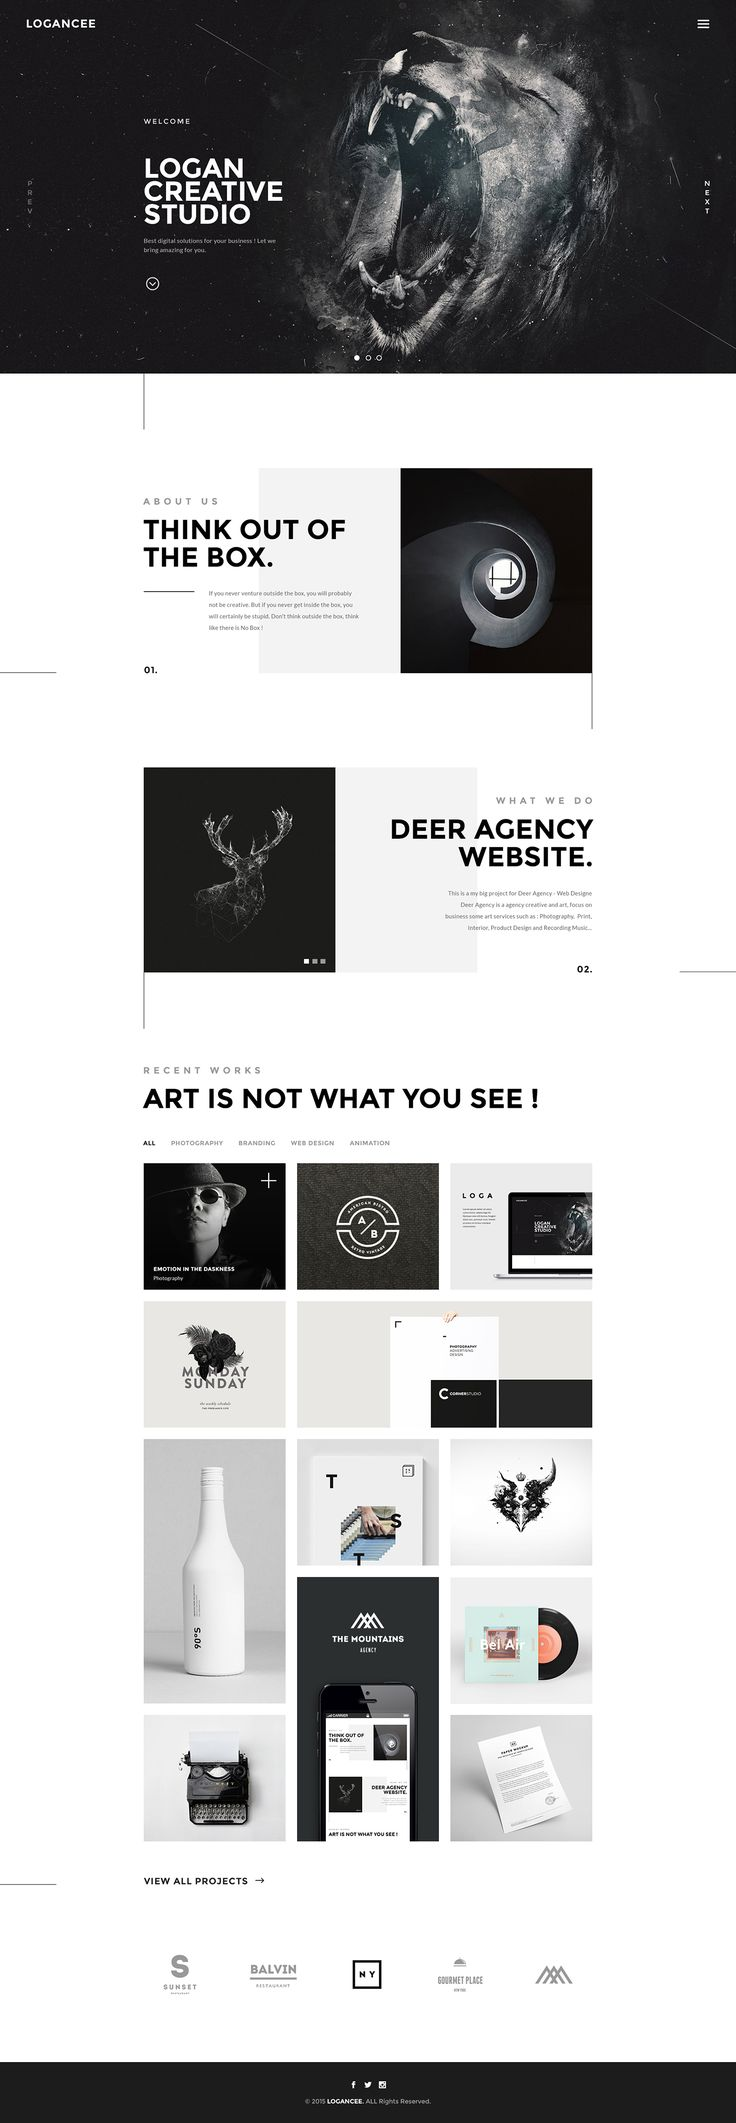 Logancee | Creative Studio Homepages on Behance